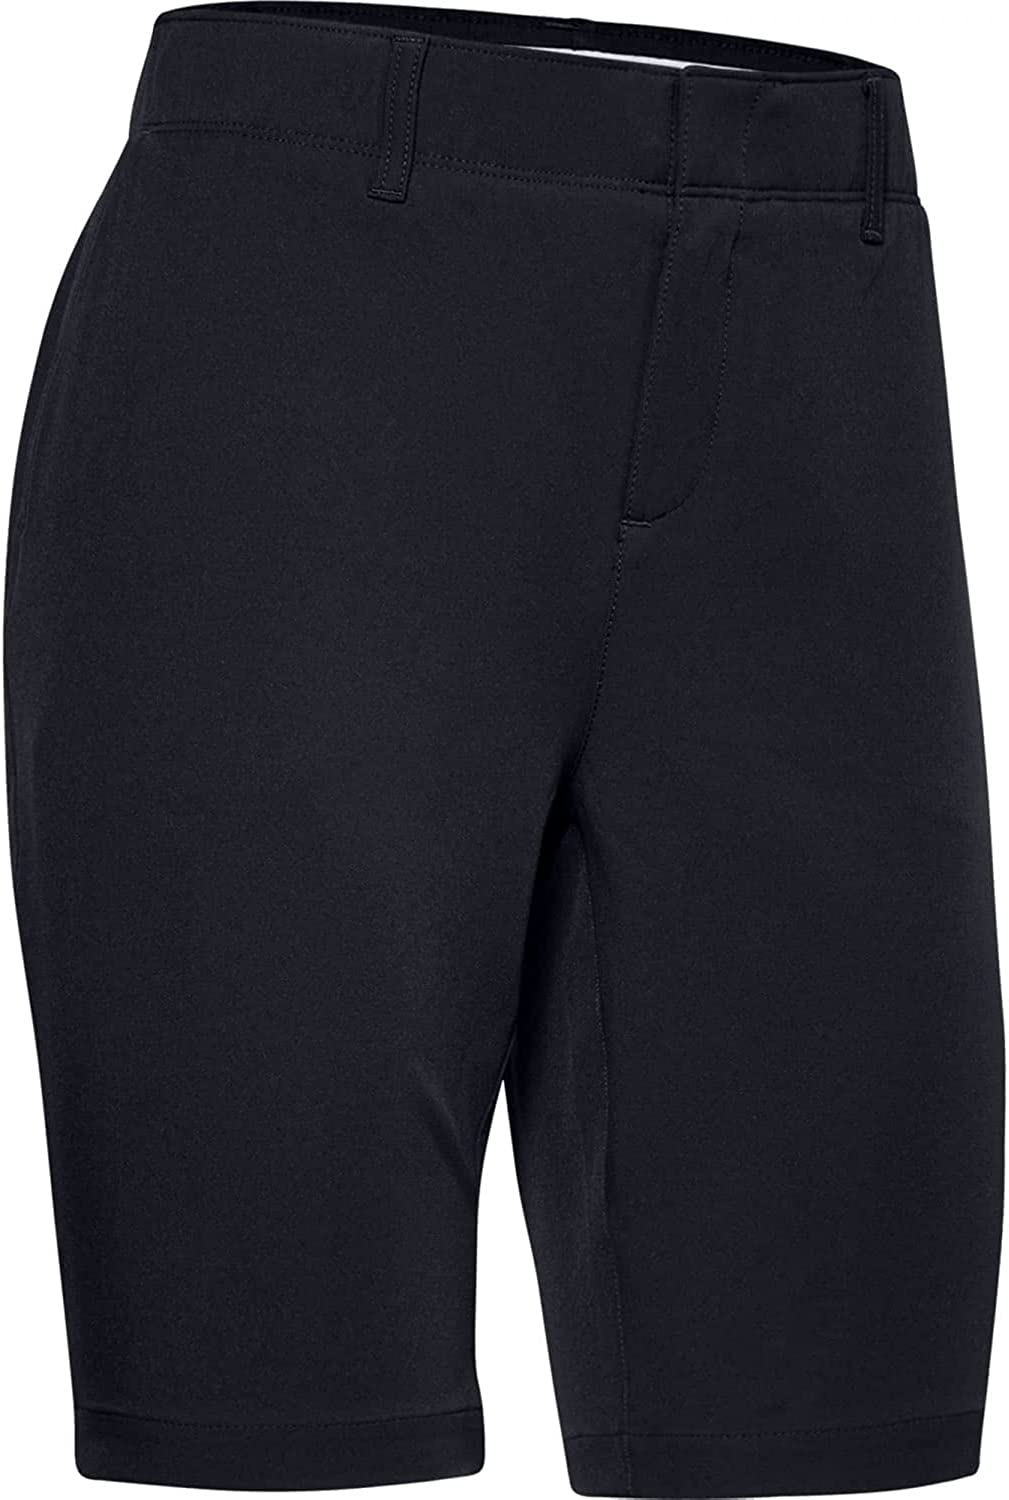 Under Armour Women's Shorts Golf OFFicial store Links High quality new